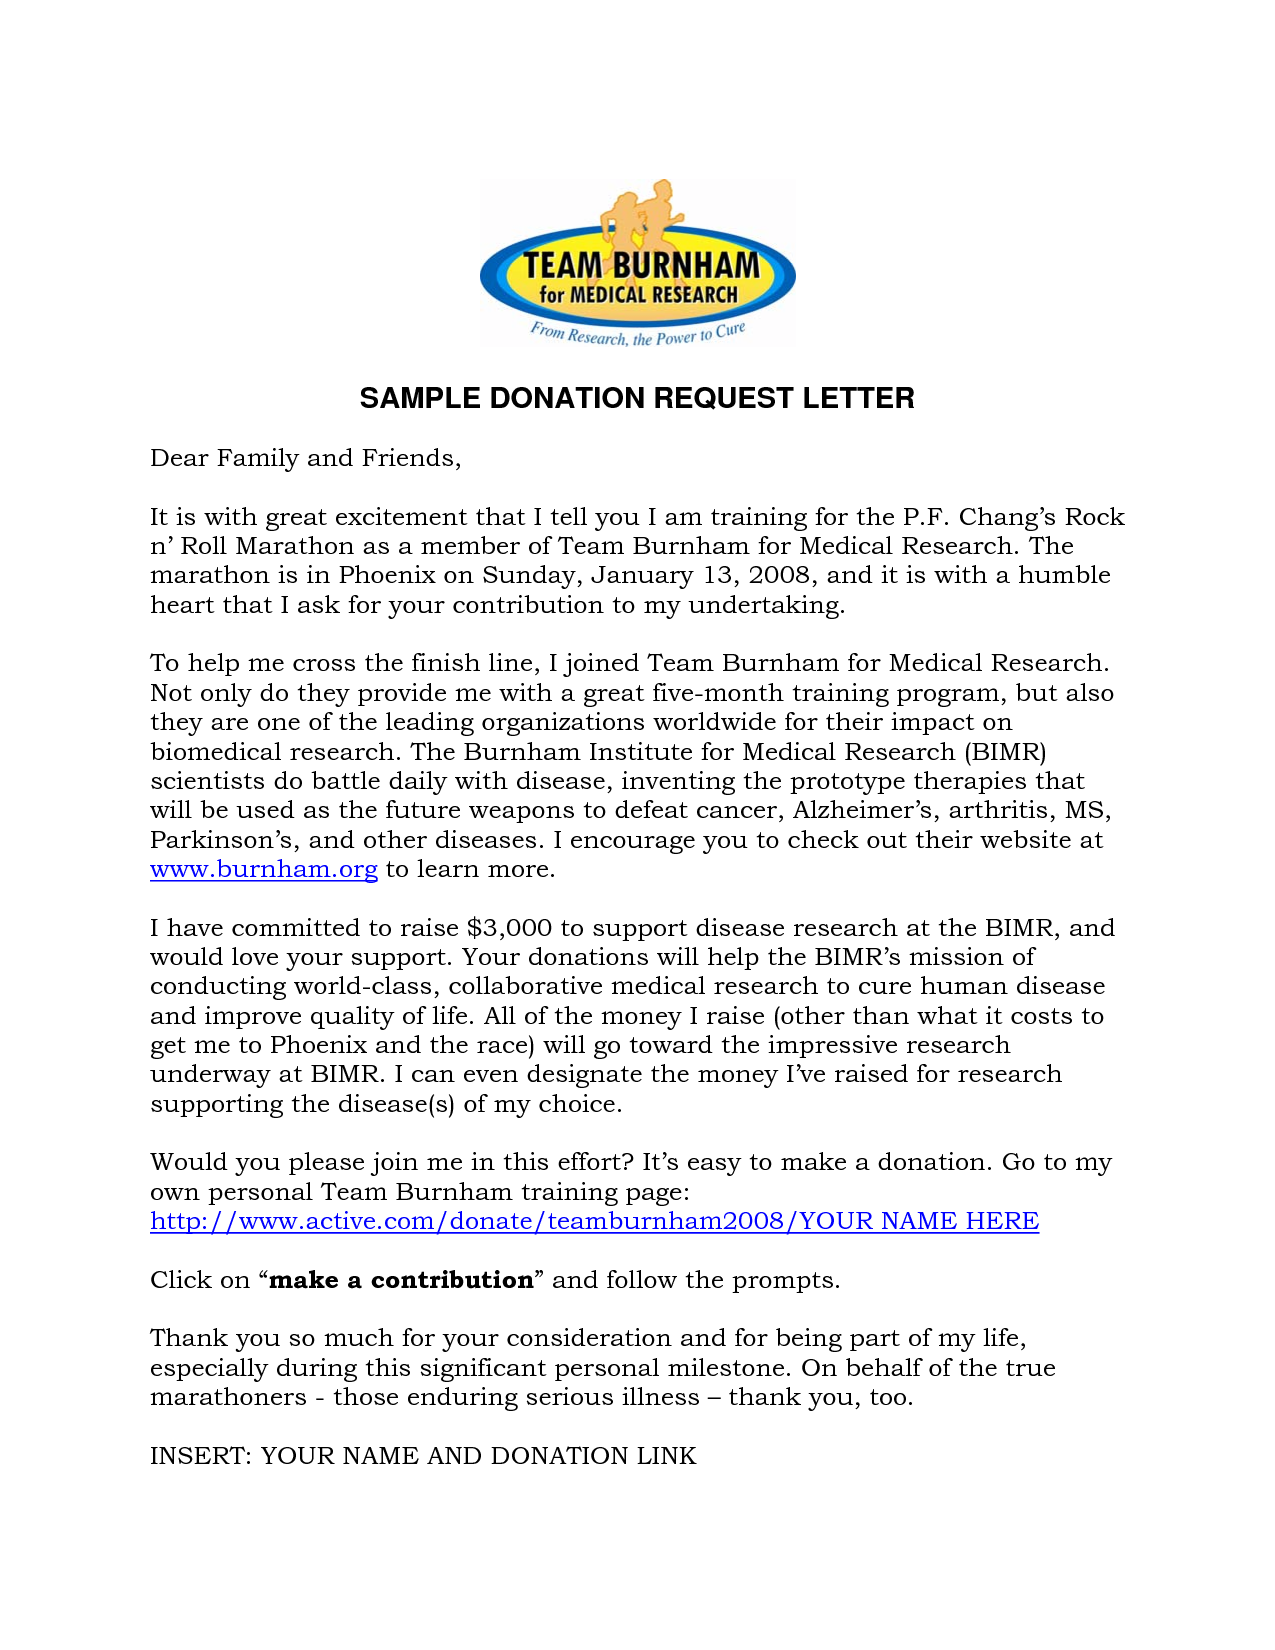 Sample Donation Request Letter Template Fundraising – Sample Donation Request Letter